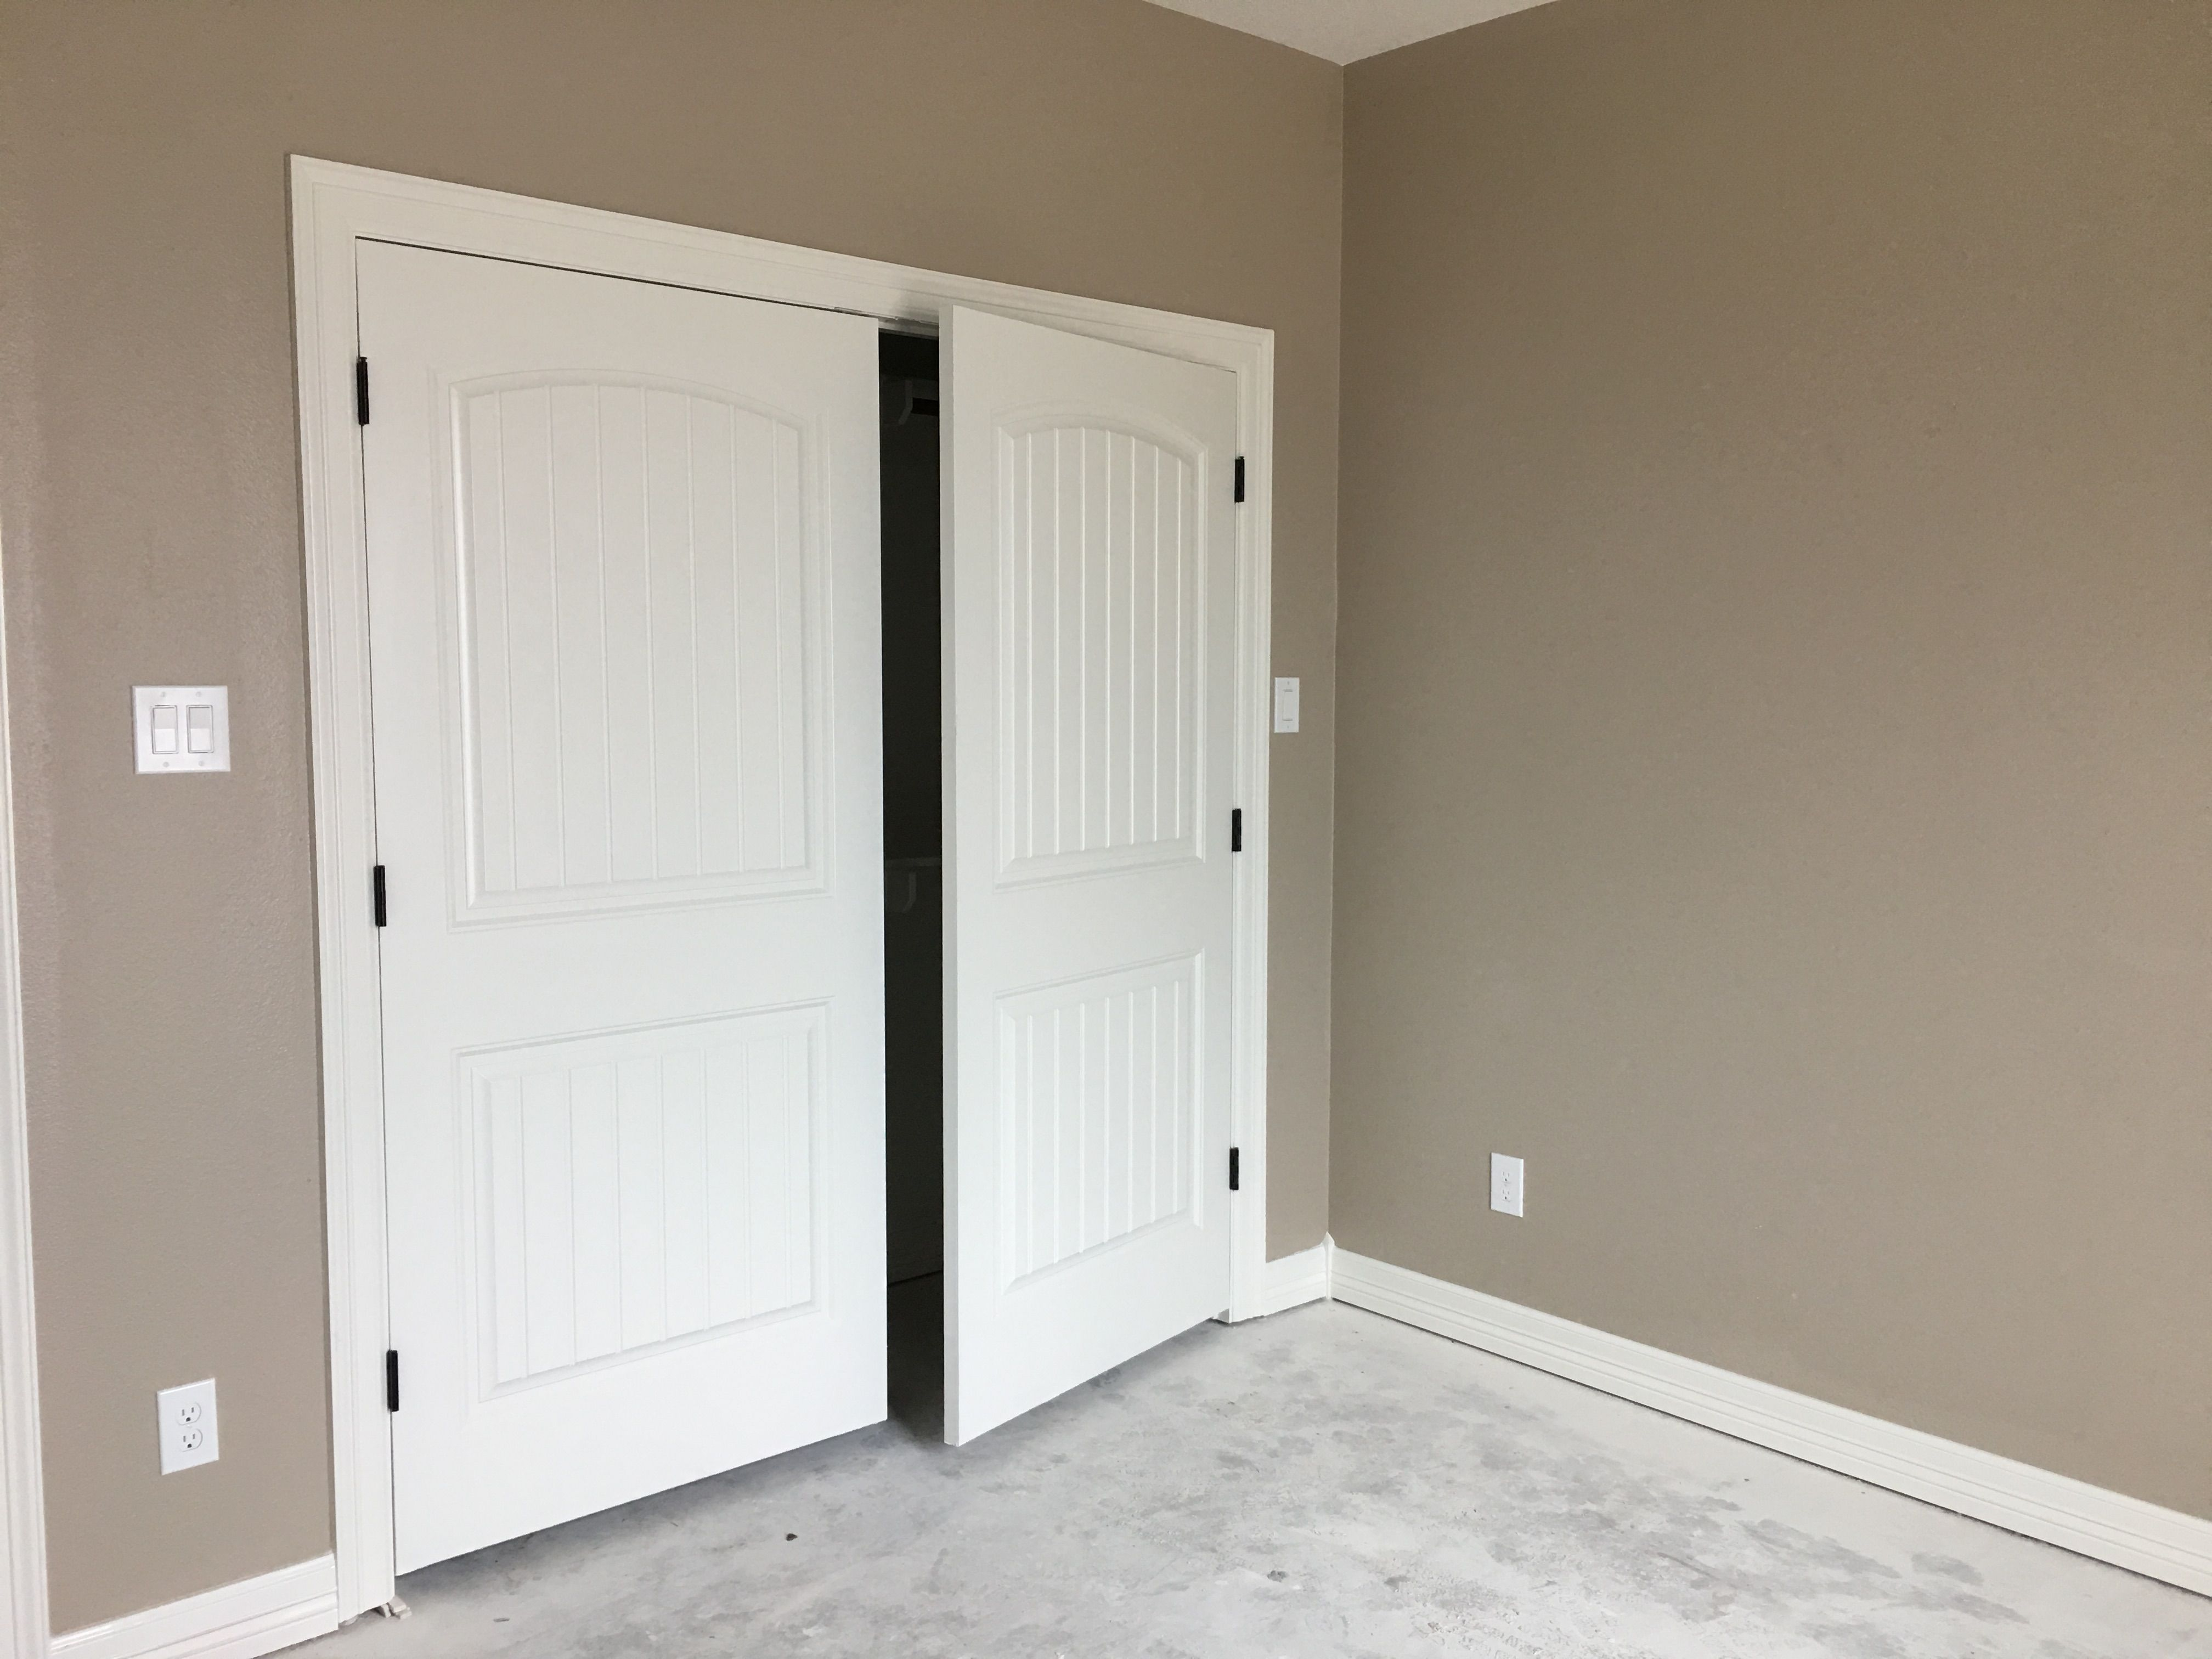 Sherwin Williams Alabaster And Balanced Beige Bedroom Paint